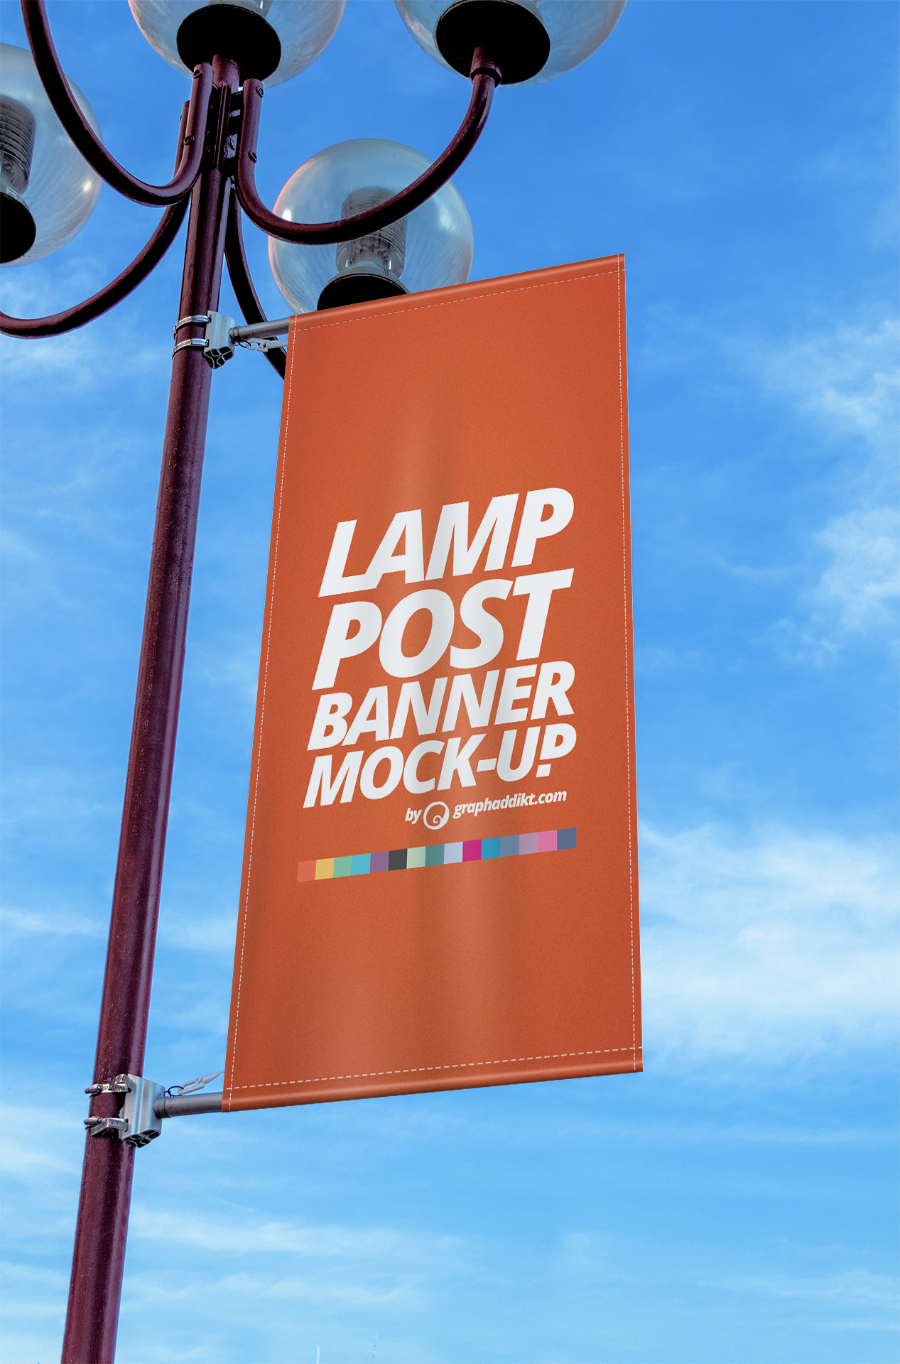 Free Lamp Post Banner Mockup Free Design Resources